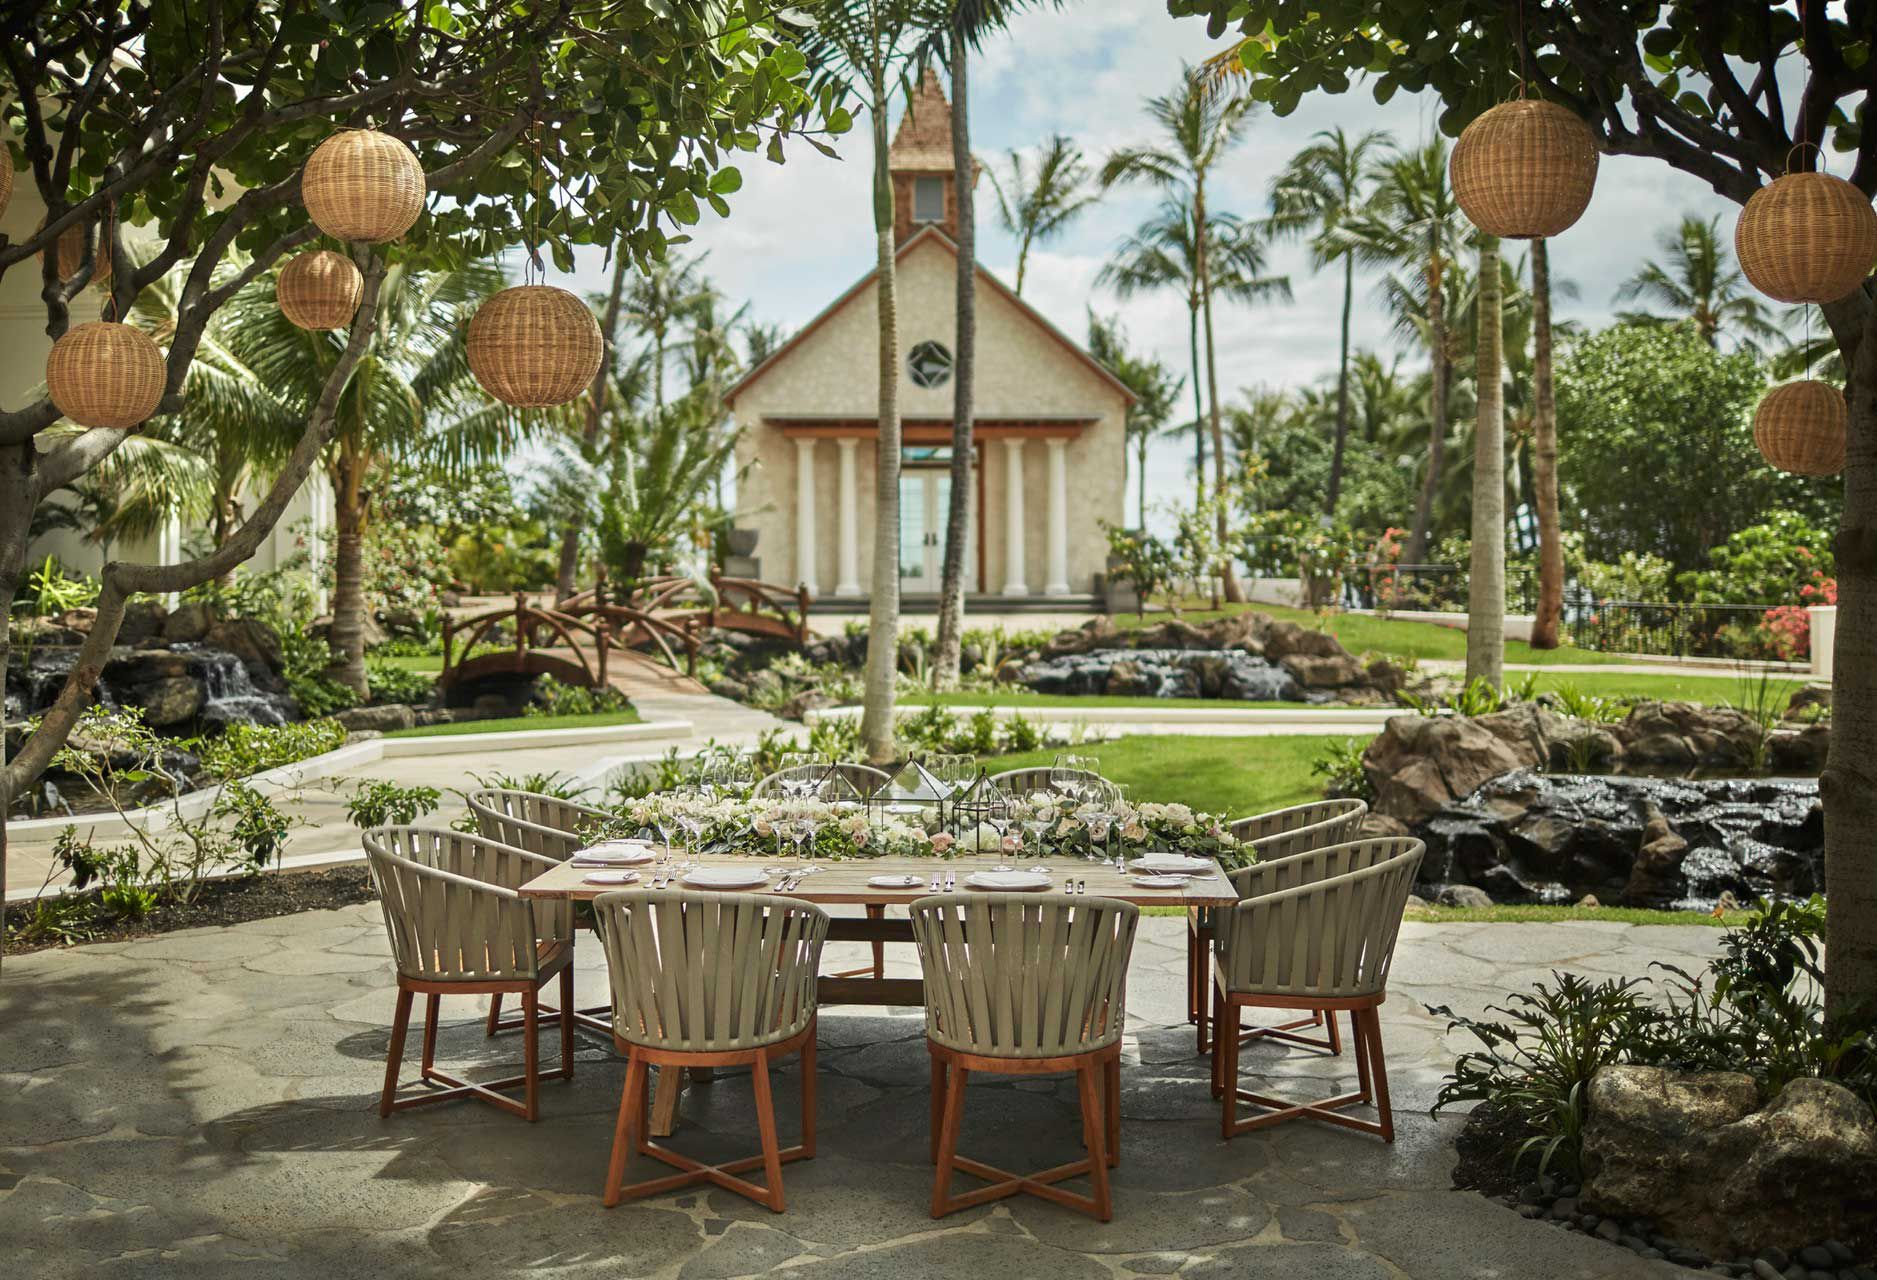 Hawaii Wedding Venues | Hawaii Wedding Venues For Any Budget Islands